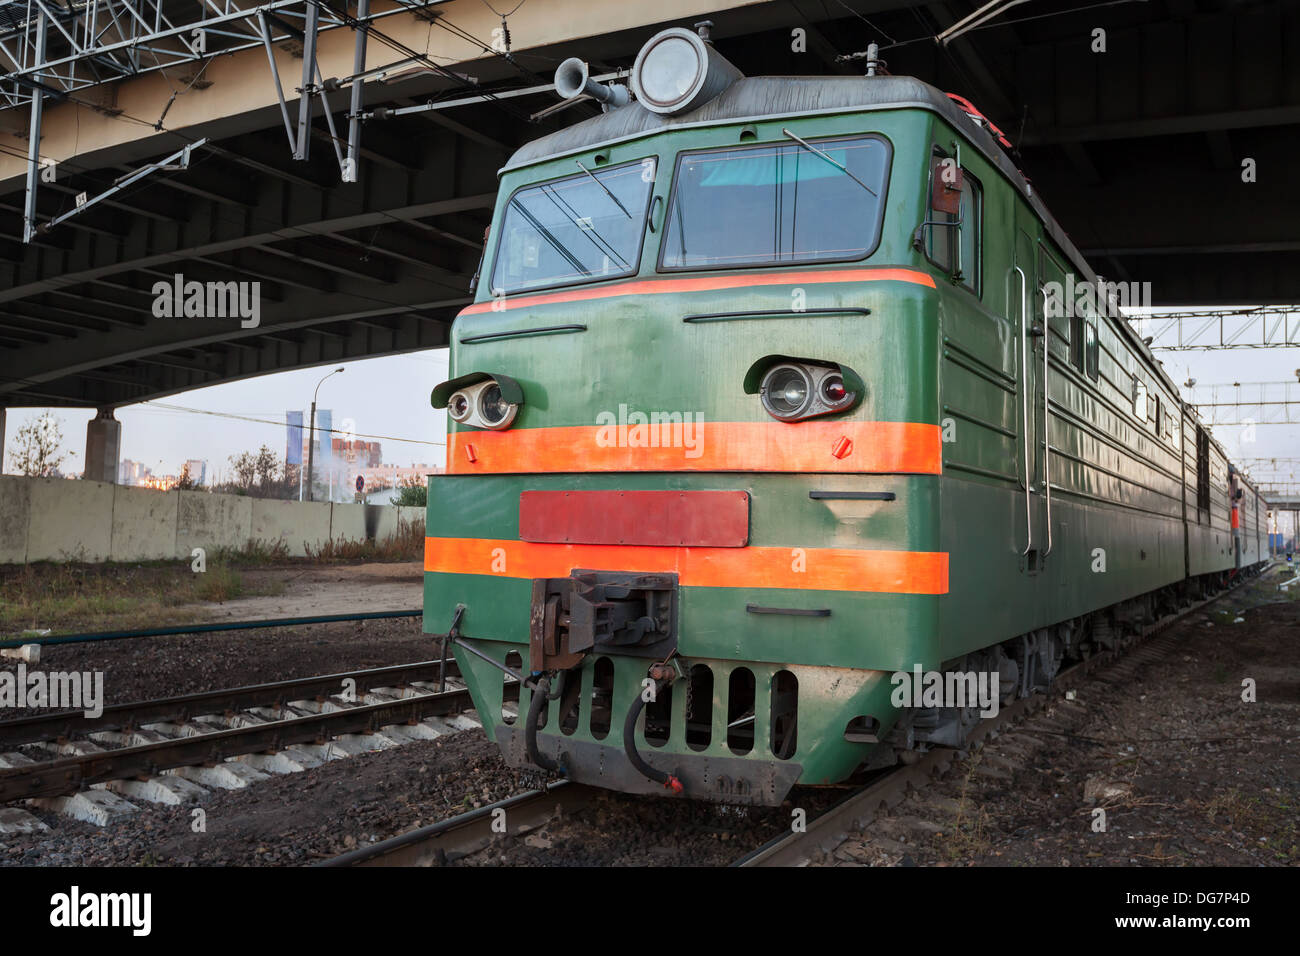 Green locomotive with red stripes on the cabin stands under the bridge on the railway station Stock Photo